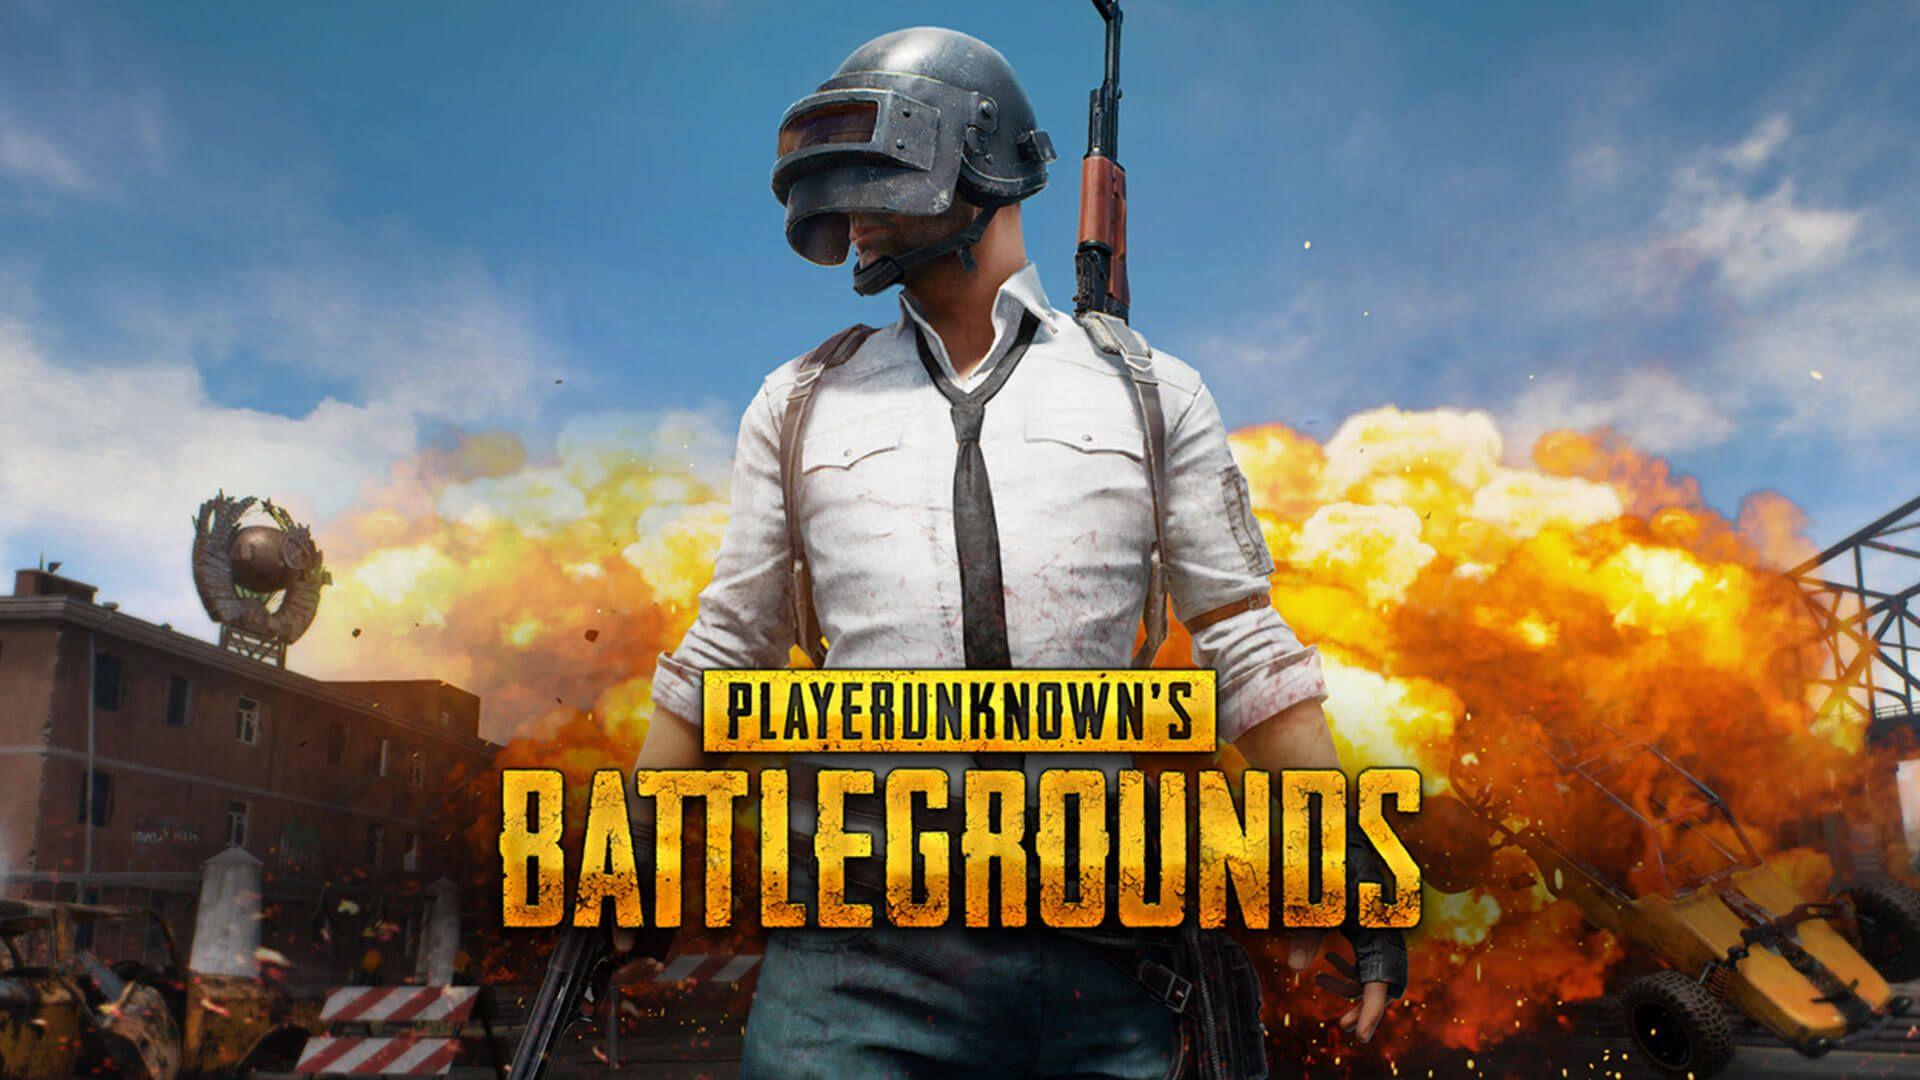 Download 620 Koleksi Wallpaper Of Pubg Mobile Gratis